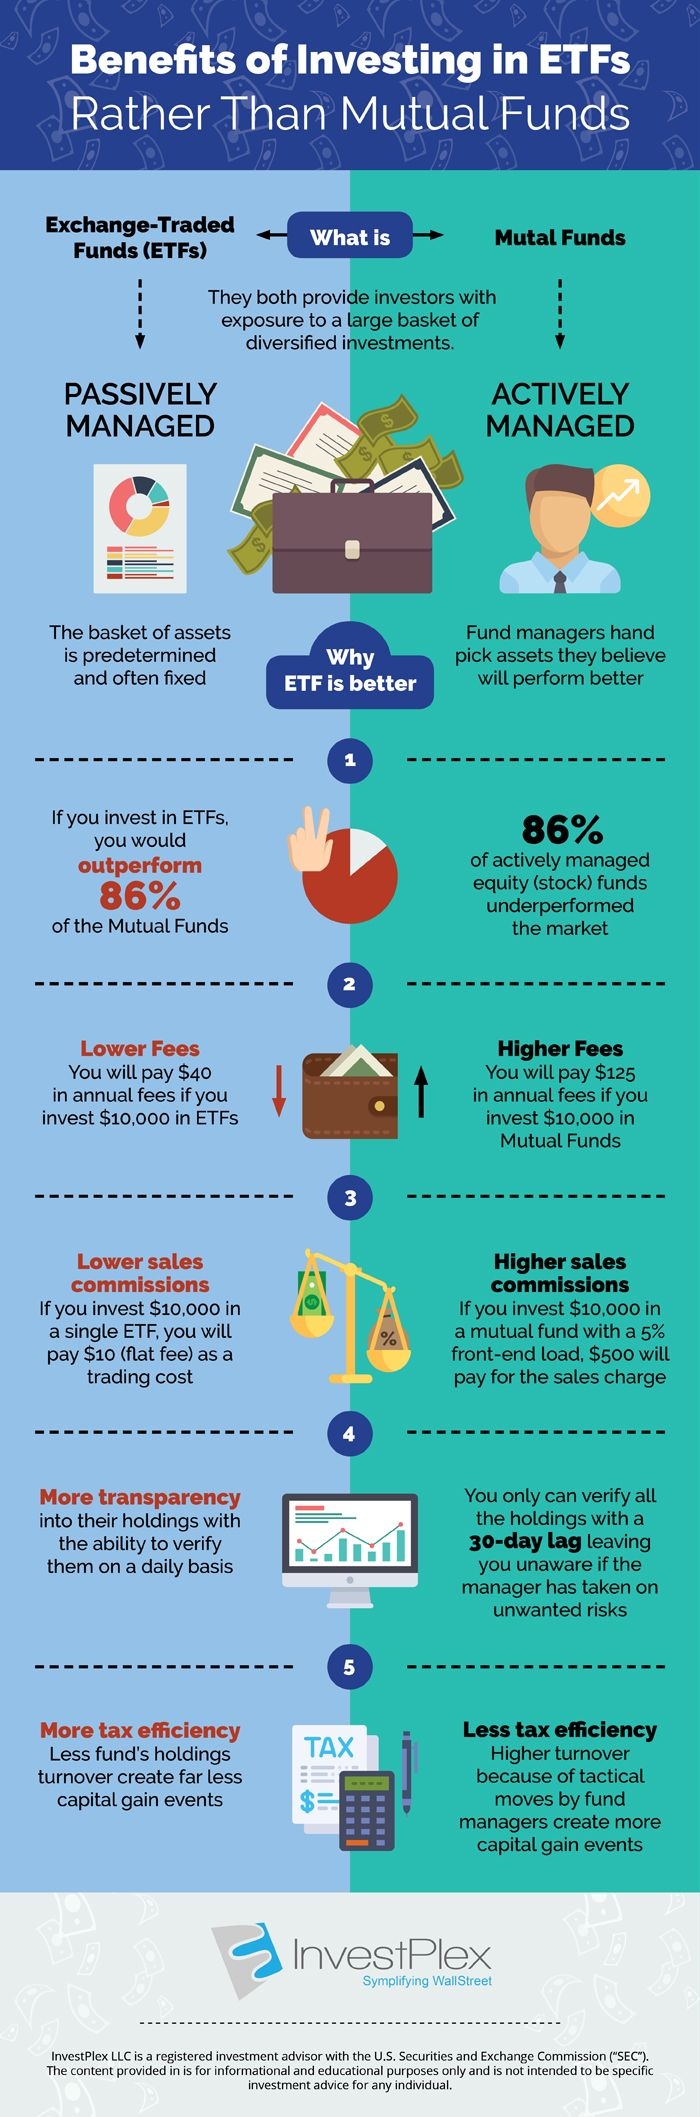 Benefits of Investing in ETFs Rather Than Mutual Funds. #infographics #investing #ETF #funds #MutalFunds #finances #money #business #trading #comparison #benefits #tips #StockExchange #efficiency #effective